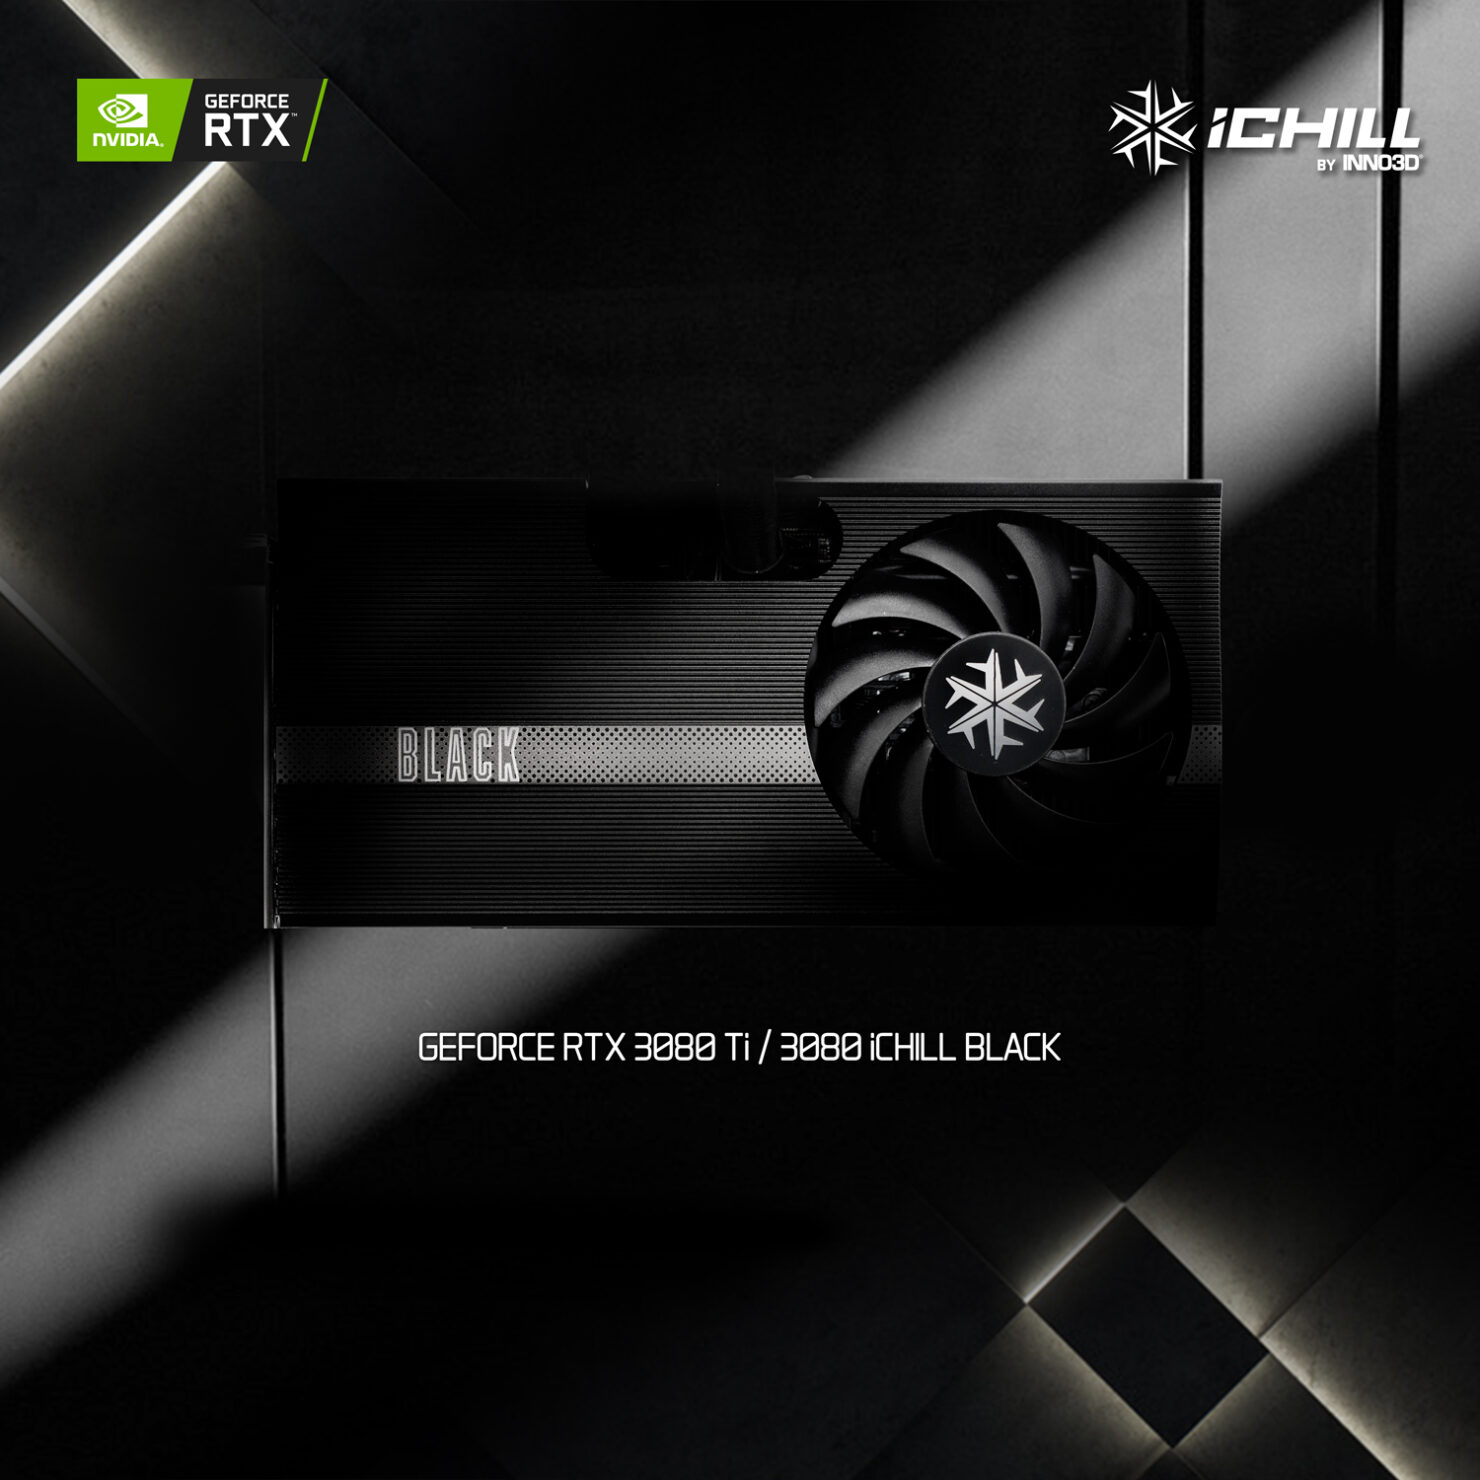 inno3d-launches-the-geforce-rtx-3080-ti-&-rtx-3080-ichill-black-with-a-hybrid-cooling-solution-&-a-stealthy-black-finish